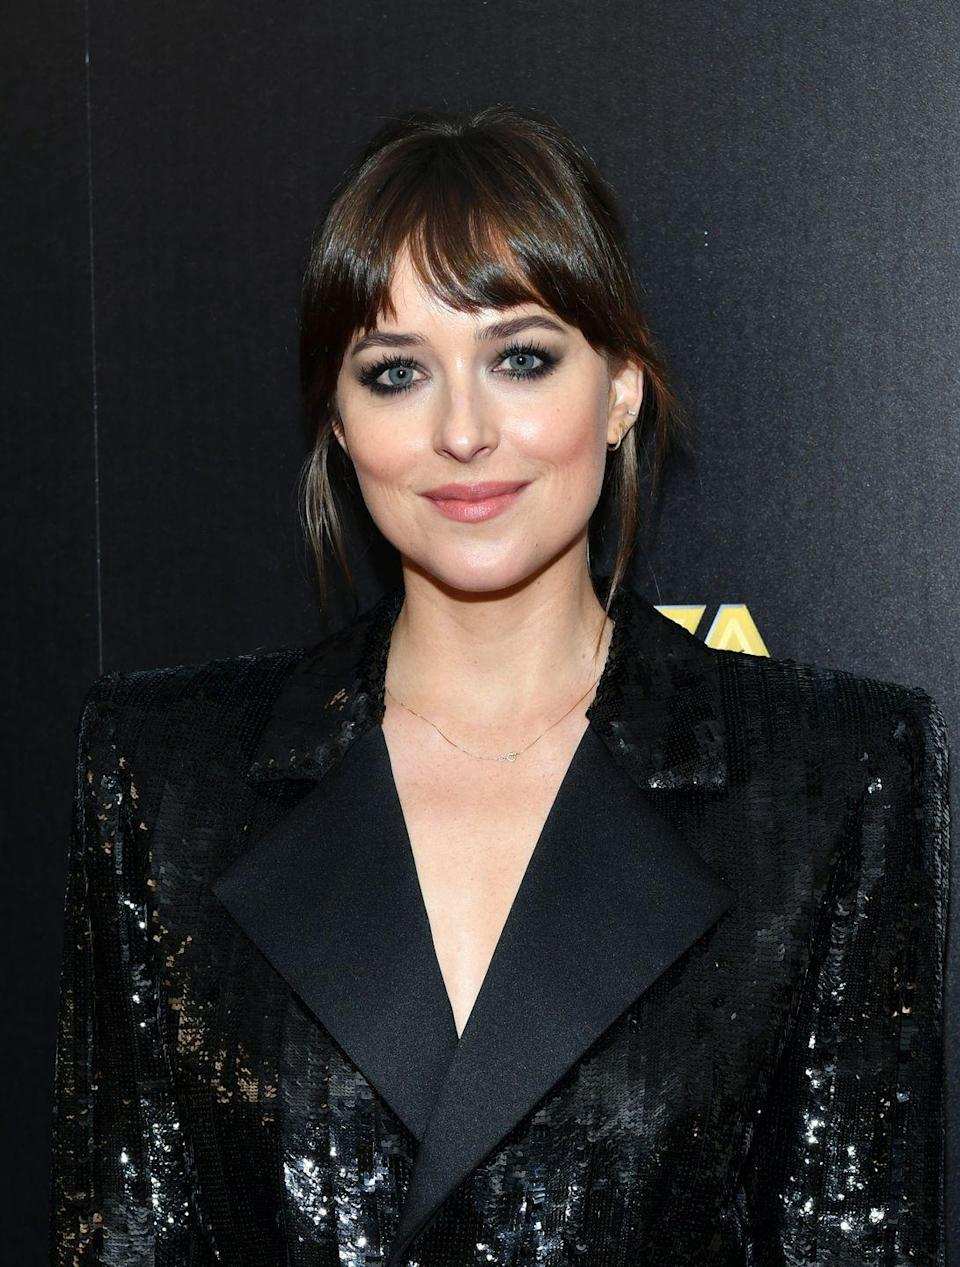 <p>Dakota Johnson, daughter of Don Johnson and Melanie Griffith, and star of the <em>Fifty Shades</em> films, was born on this date in 1989. </p><p>Also on this day: <br>Derrick Rose<br>Melissa Benoist<br>Alicia Silverstone <br>Rachael Leigh Cook <br>Susan Sarandon </p>